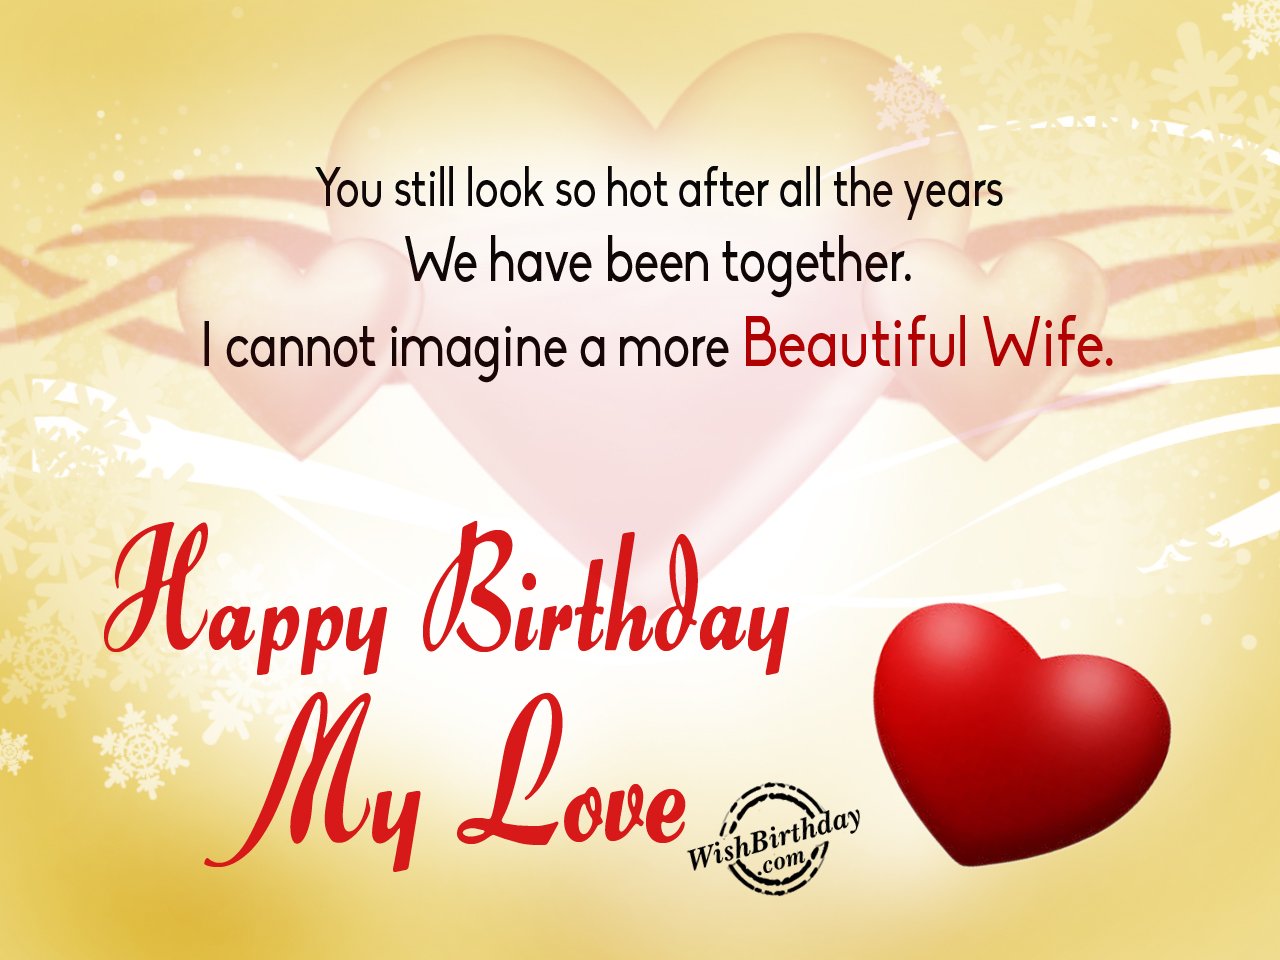 Birthday Wishes For Wife Birthday Images Pictures – Birthday Greetings for Wife